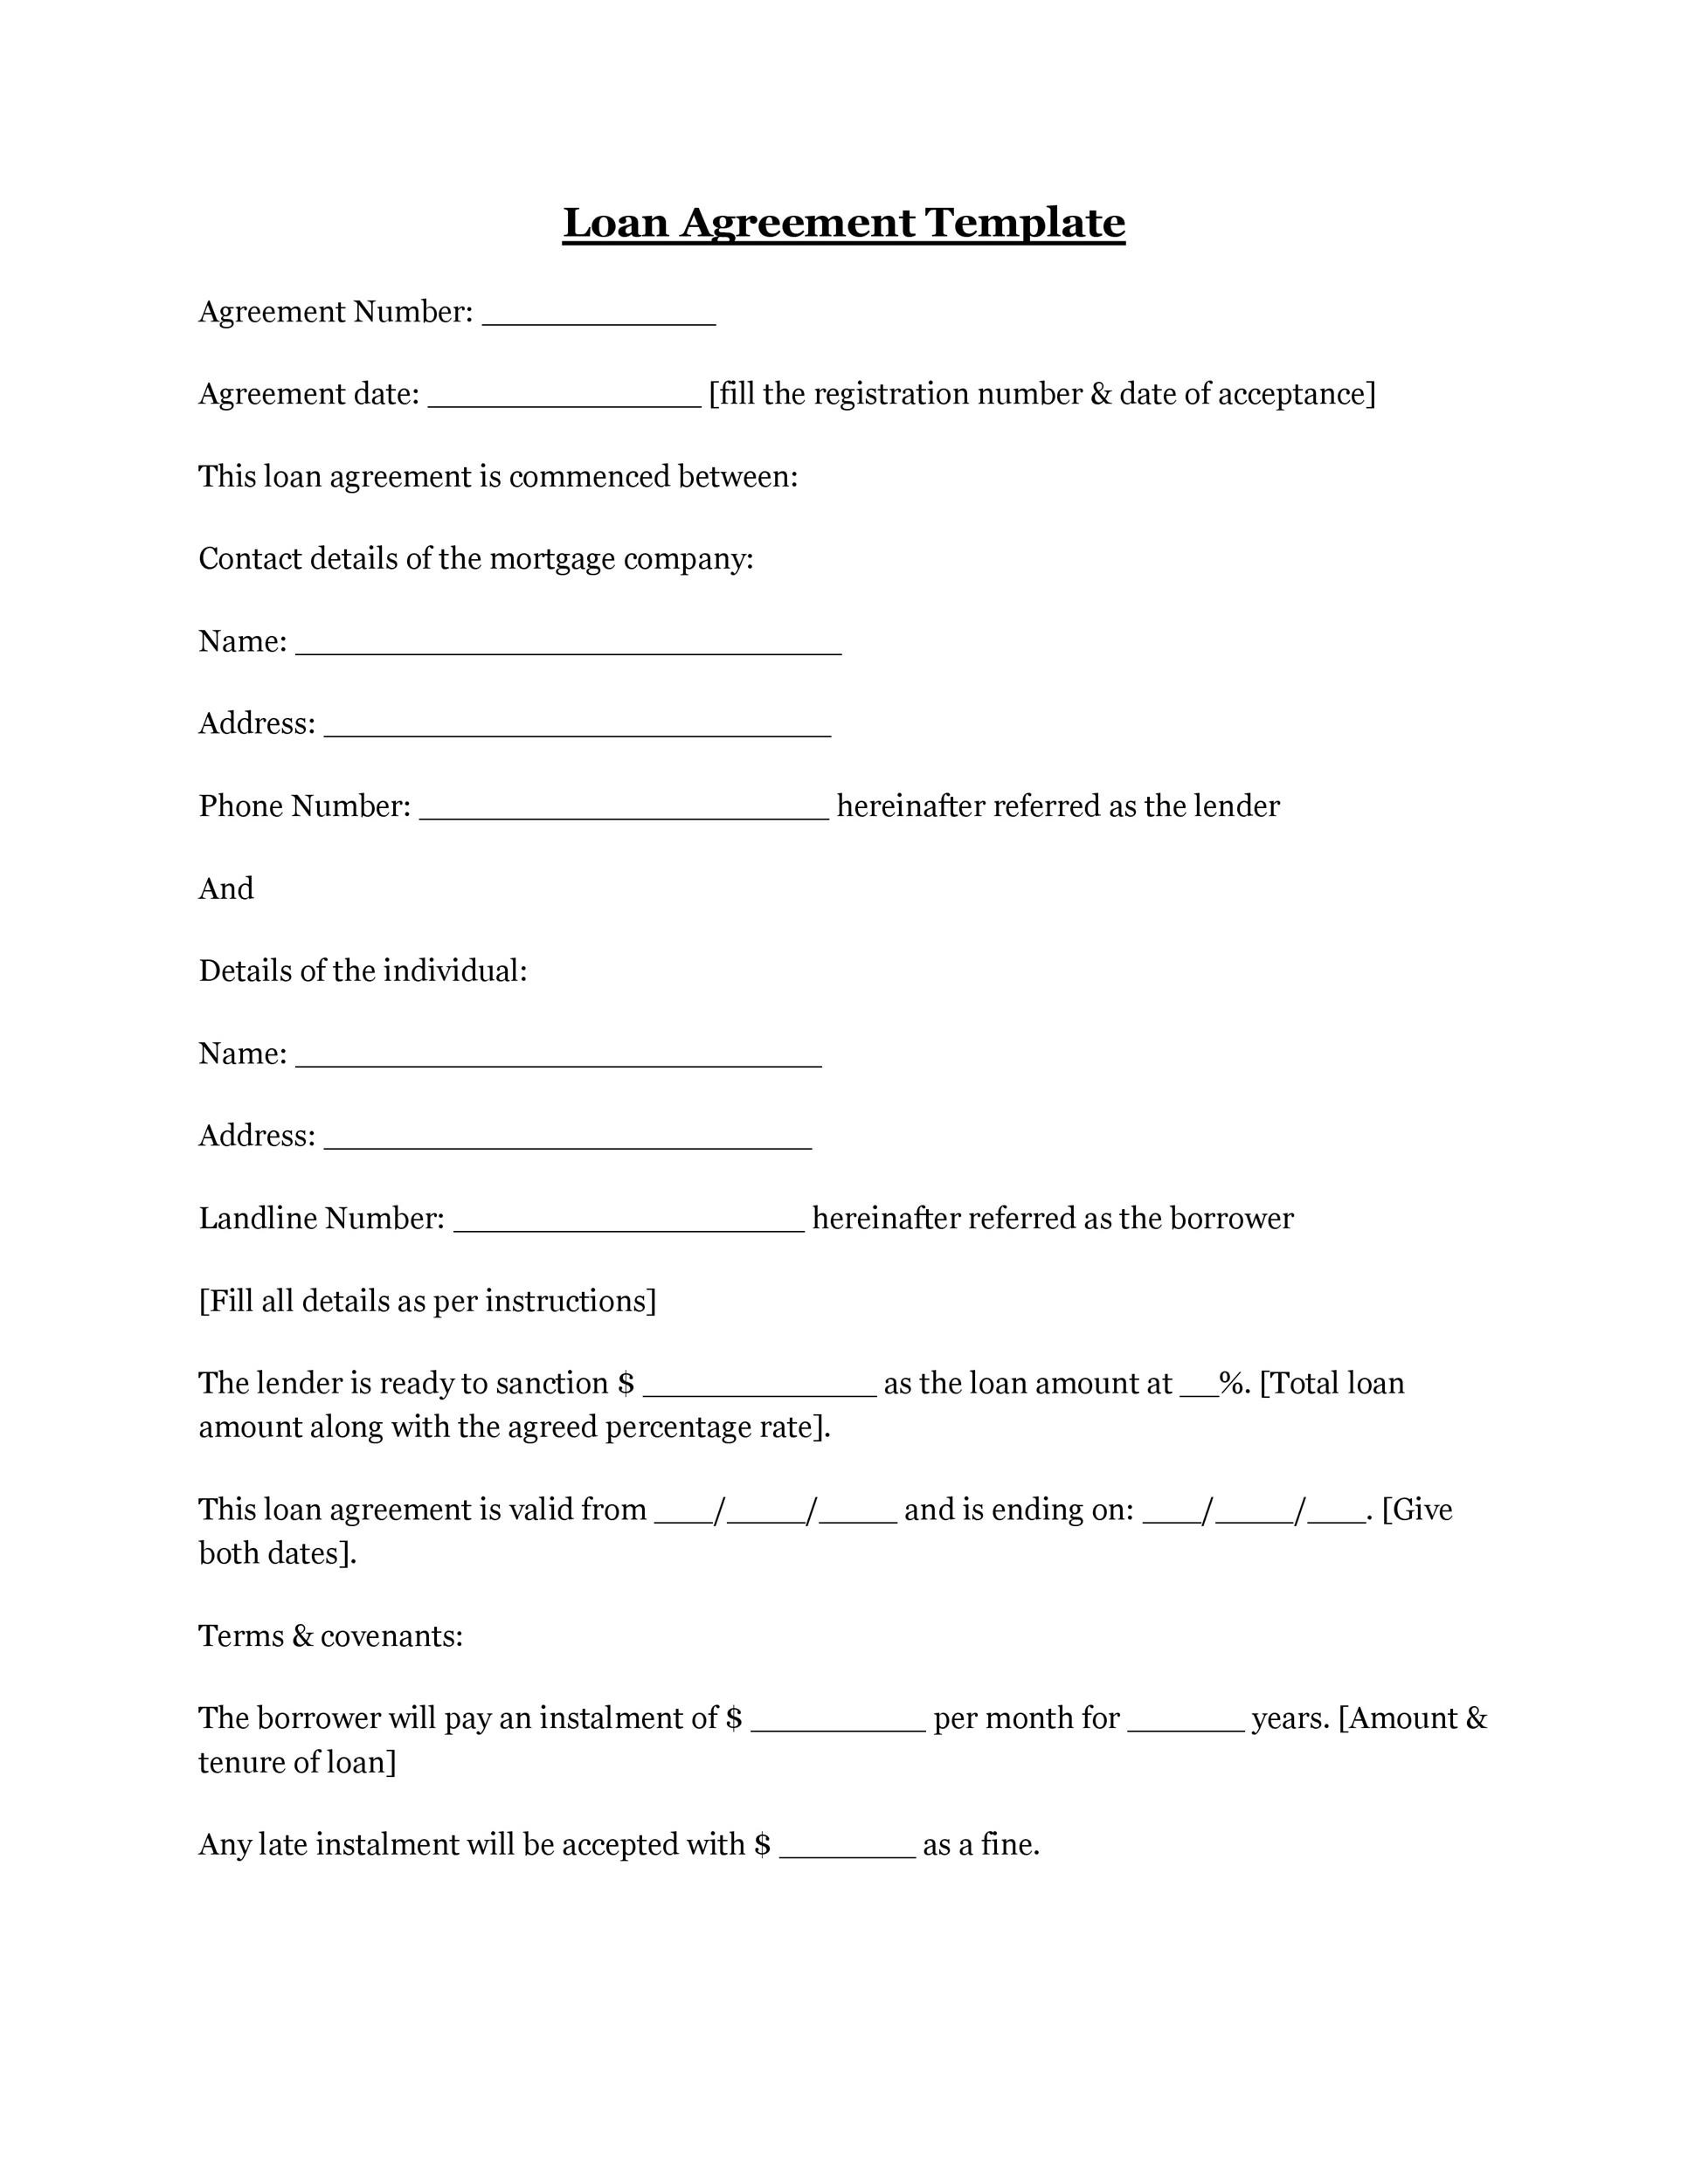 Free loan agreement template 05